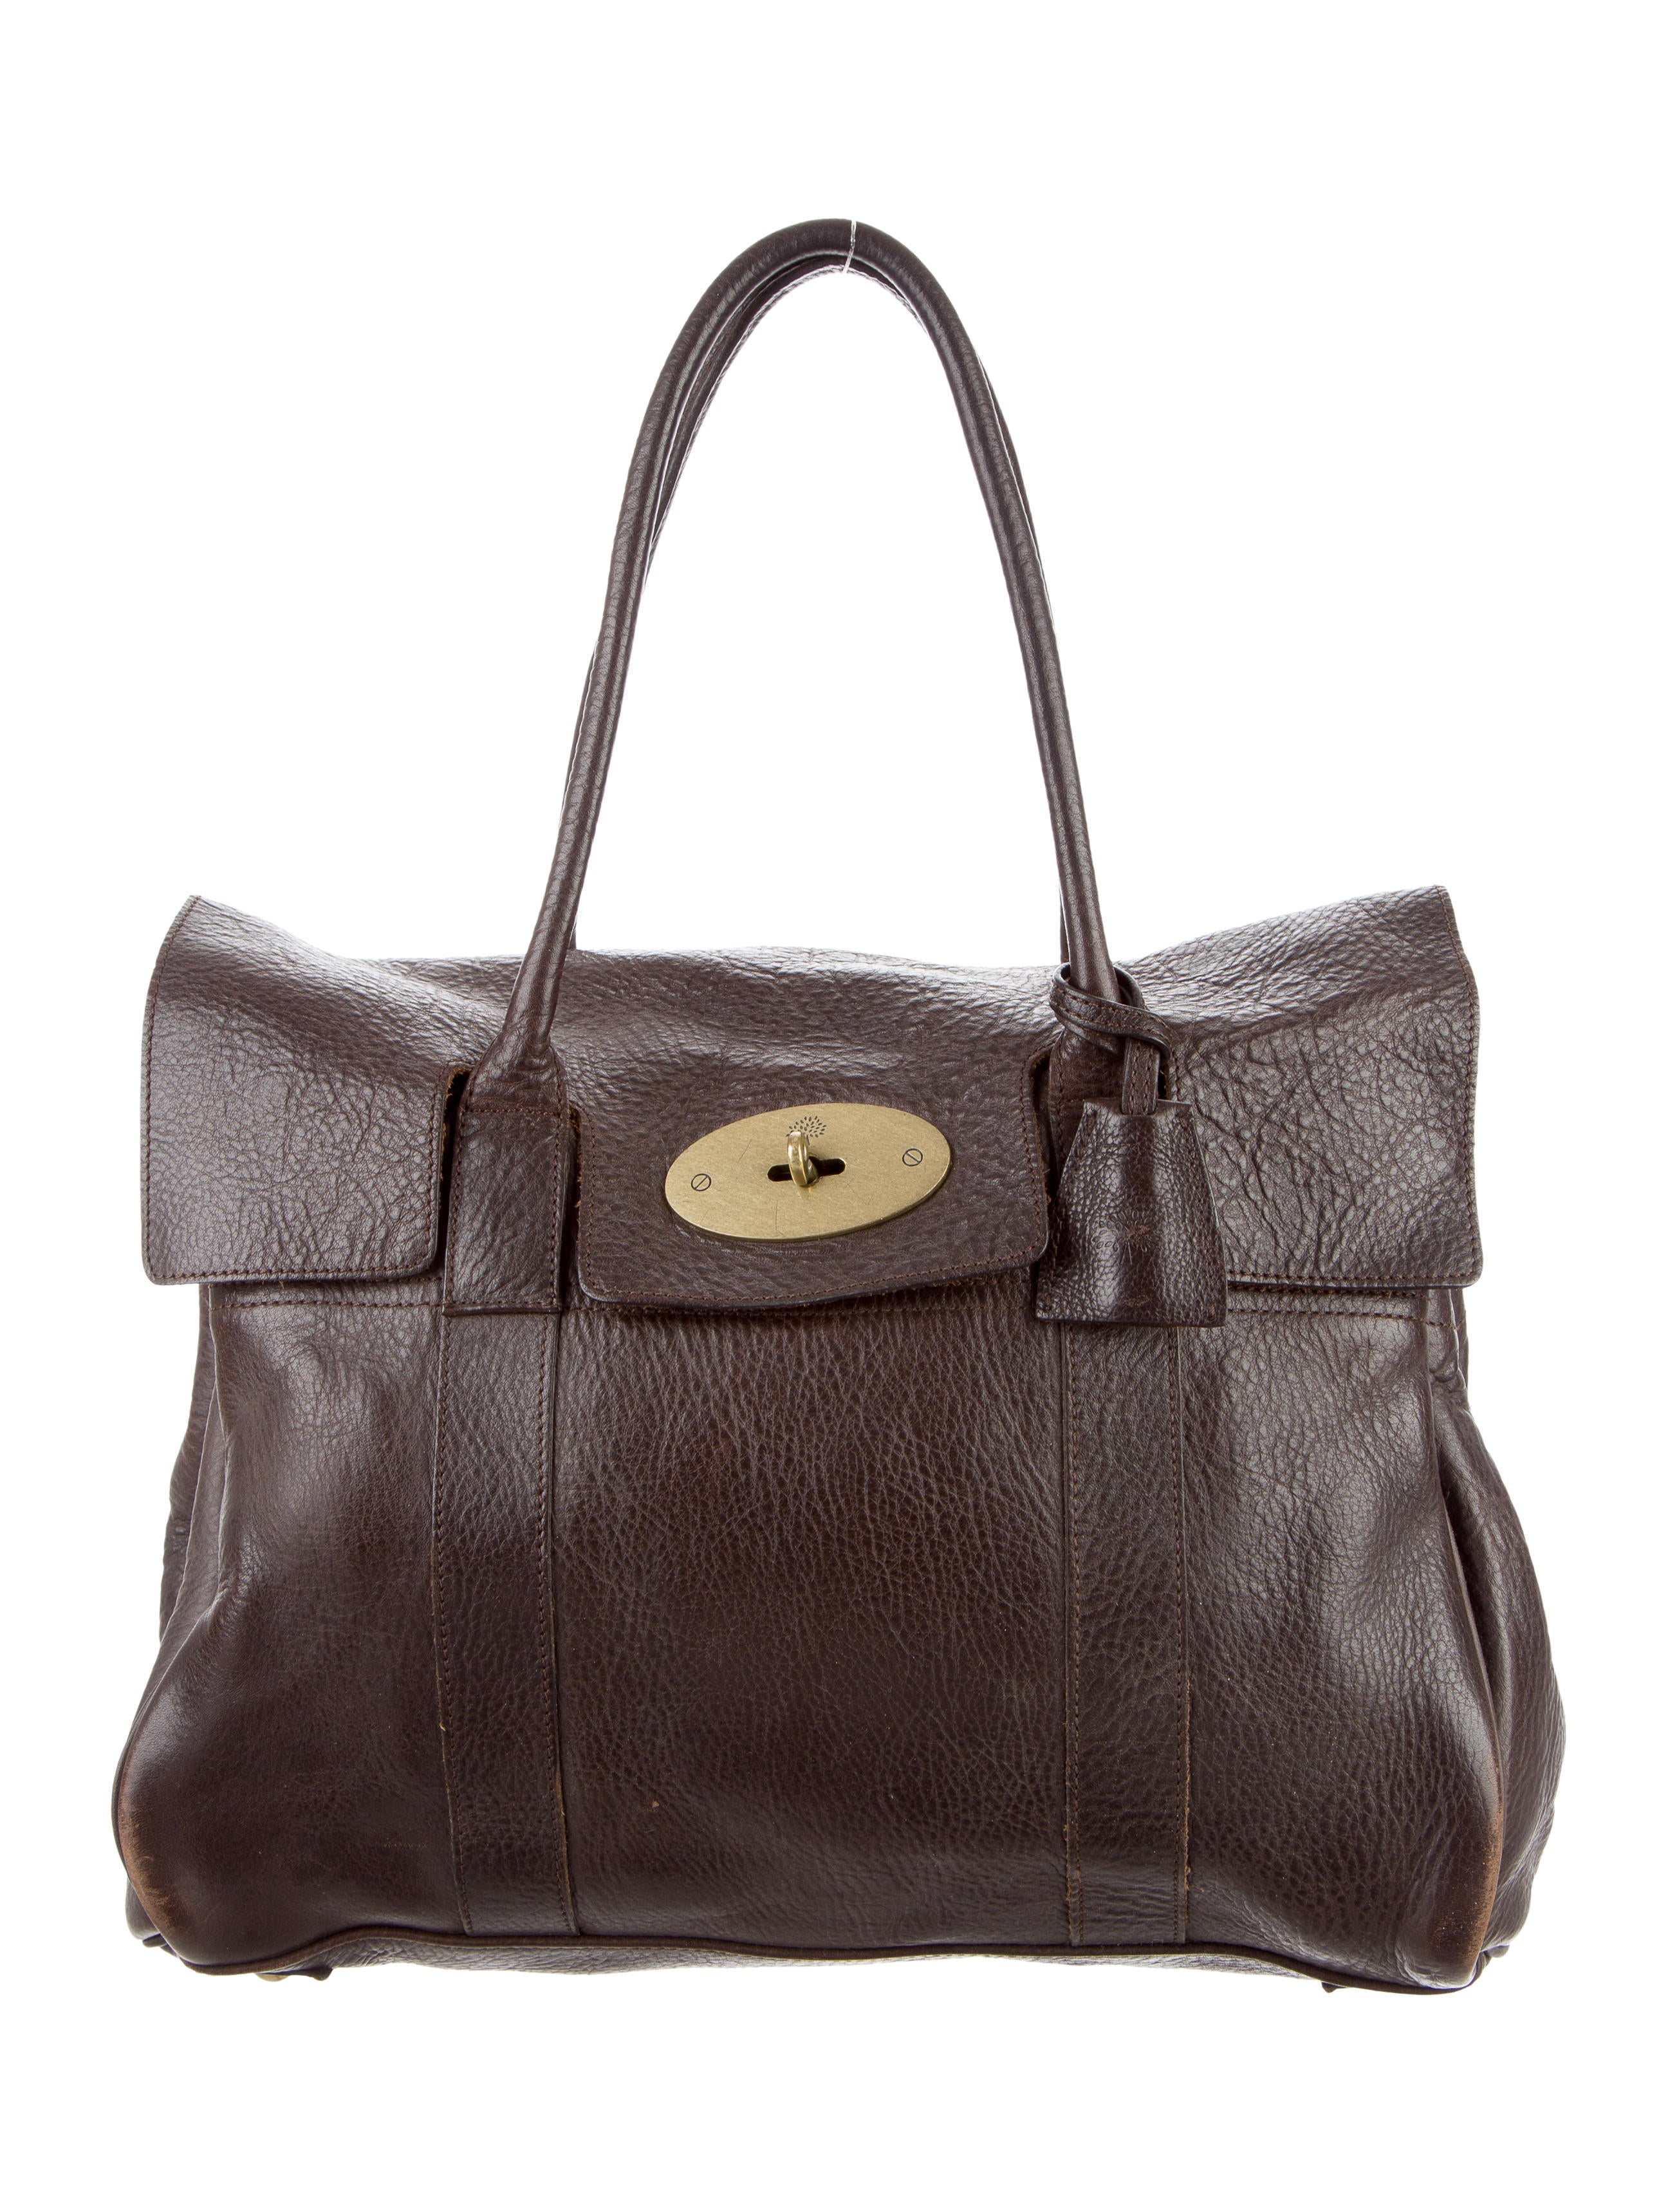 Mulberry leather bayswater bag handbags mul22555 the for The bayswater